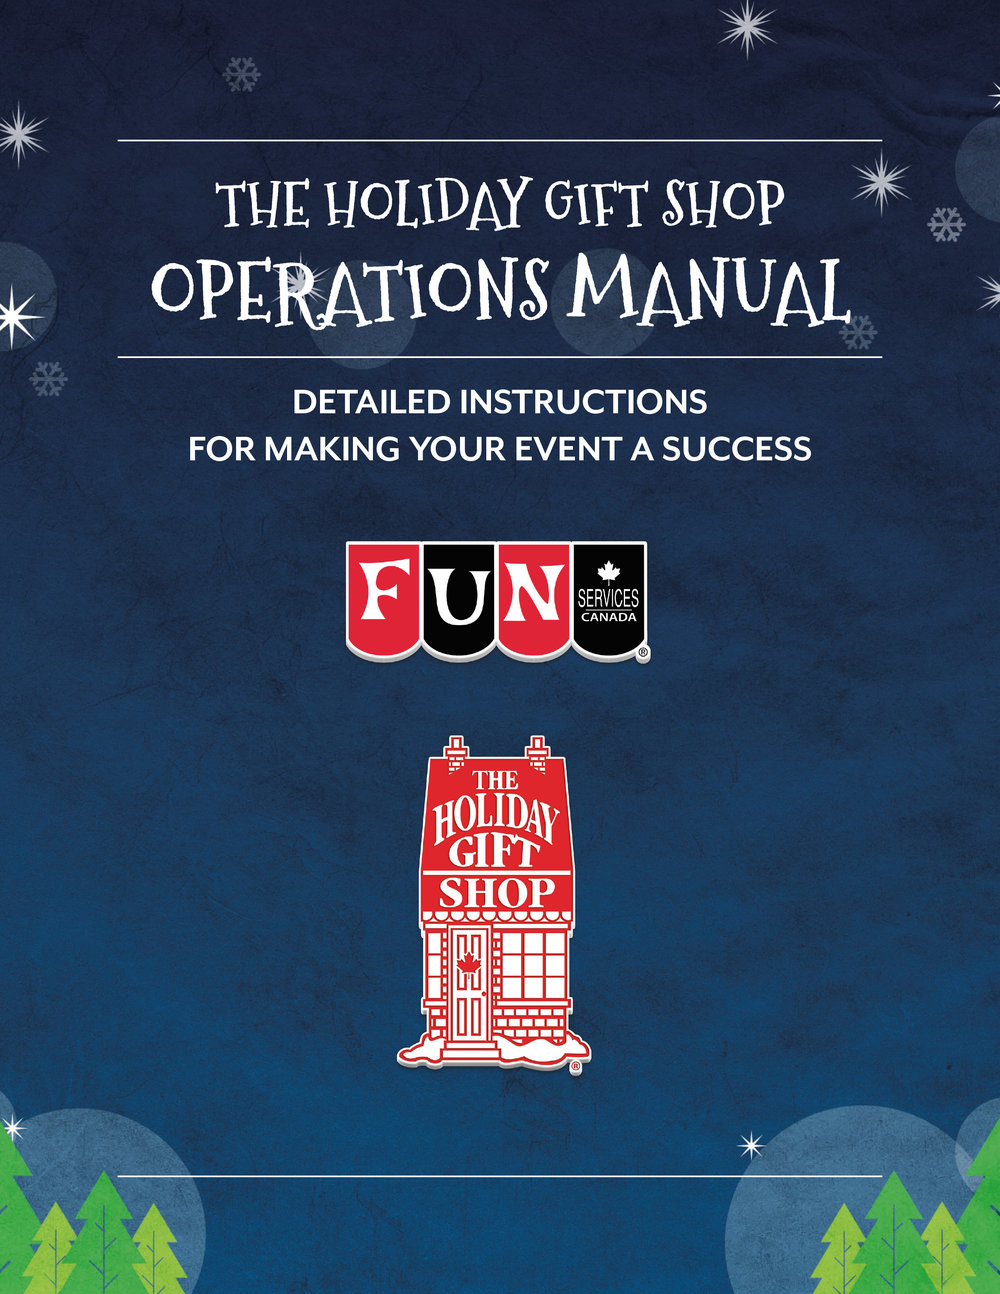 Holiday-Gift-Shop-Operations-Manual-2018.jpg